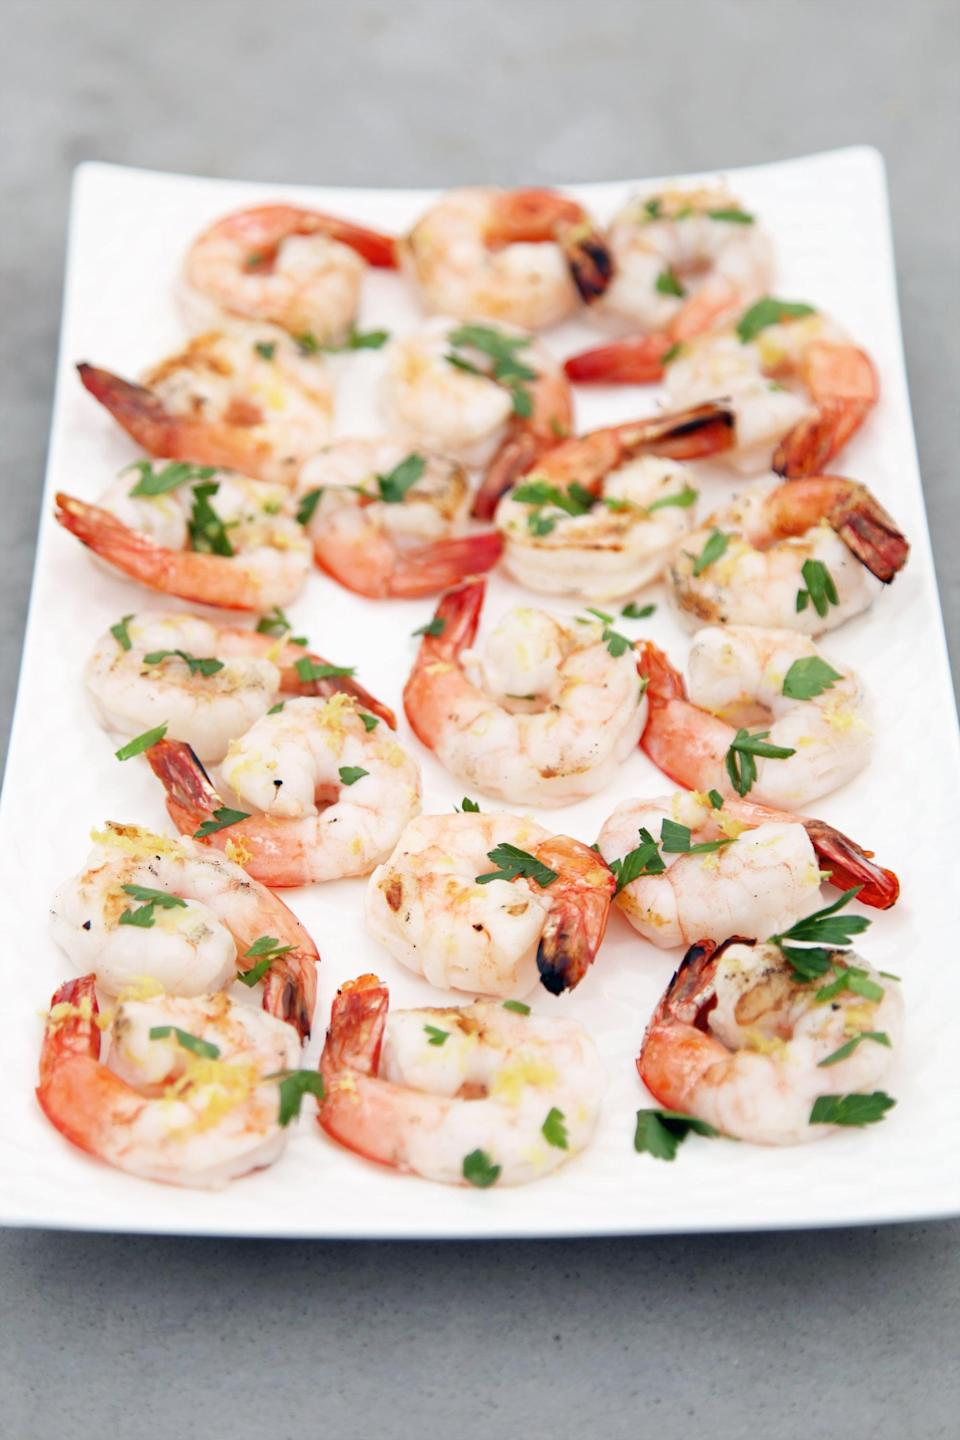 "<p>This is possibly the best (and easiest) grilled shrimp recipe you'll ever make. All you need is salt, lemon, and parsley.</p> <p><strong>Get the recipe:</strong> <a href=""https://www.popsugar.com/food/Easy-Grilled-Shrimp-Lemon-Recipe-37964178"" class=""link rapid-noclick-resp"" rel=""nofollow noopener"" target=""_blank"" data-ylk=""slk:lemony grilled shrimp"">lemony grilled shrimp</a></p>"